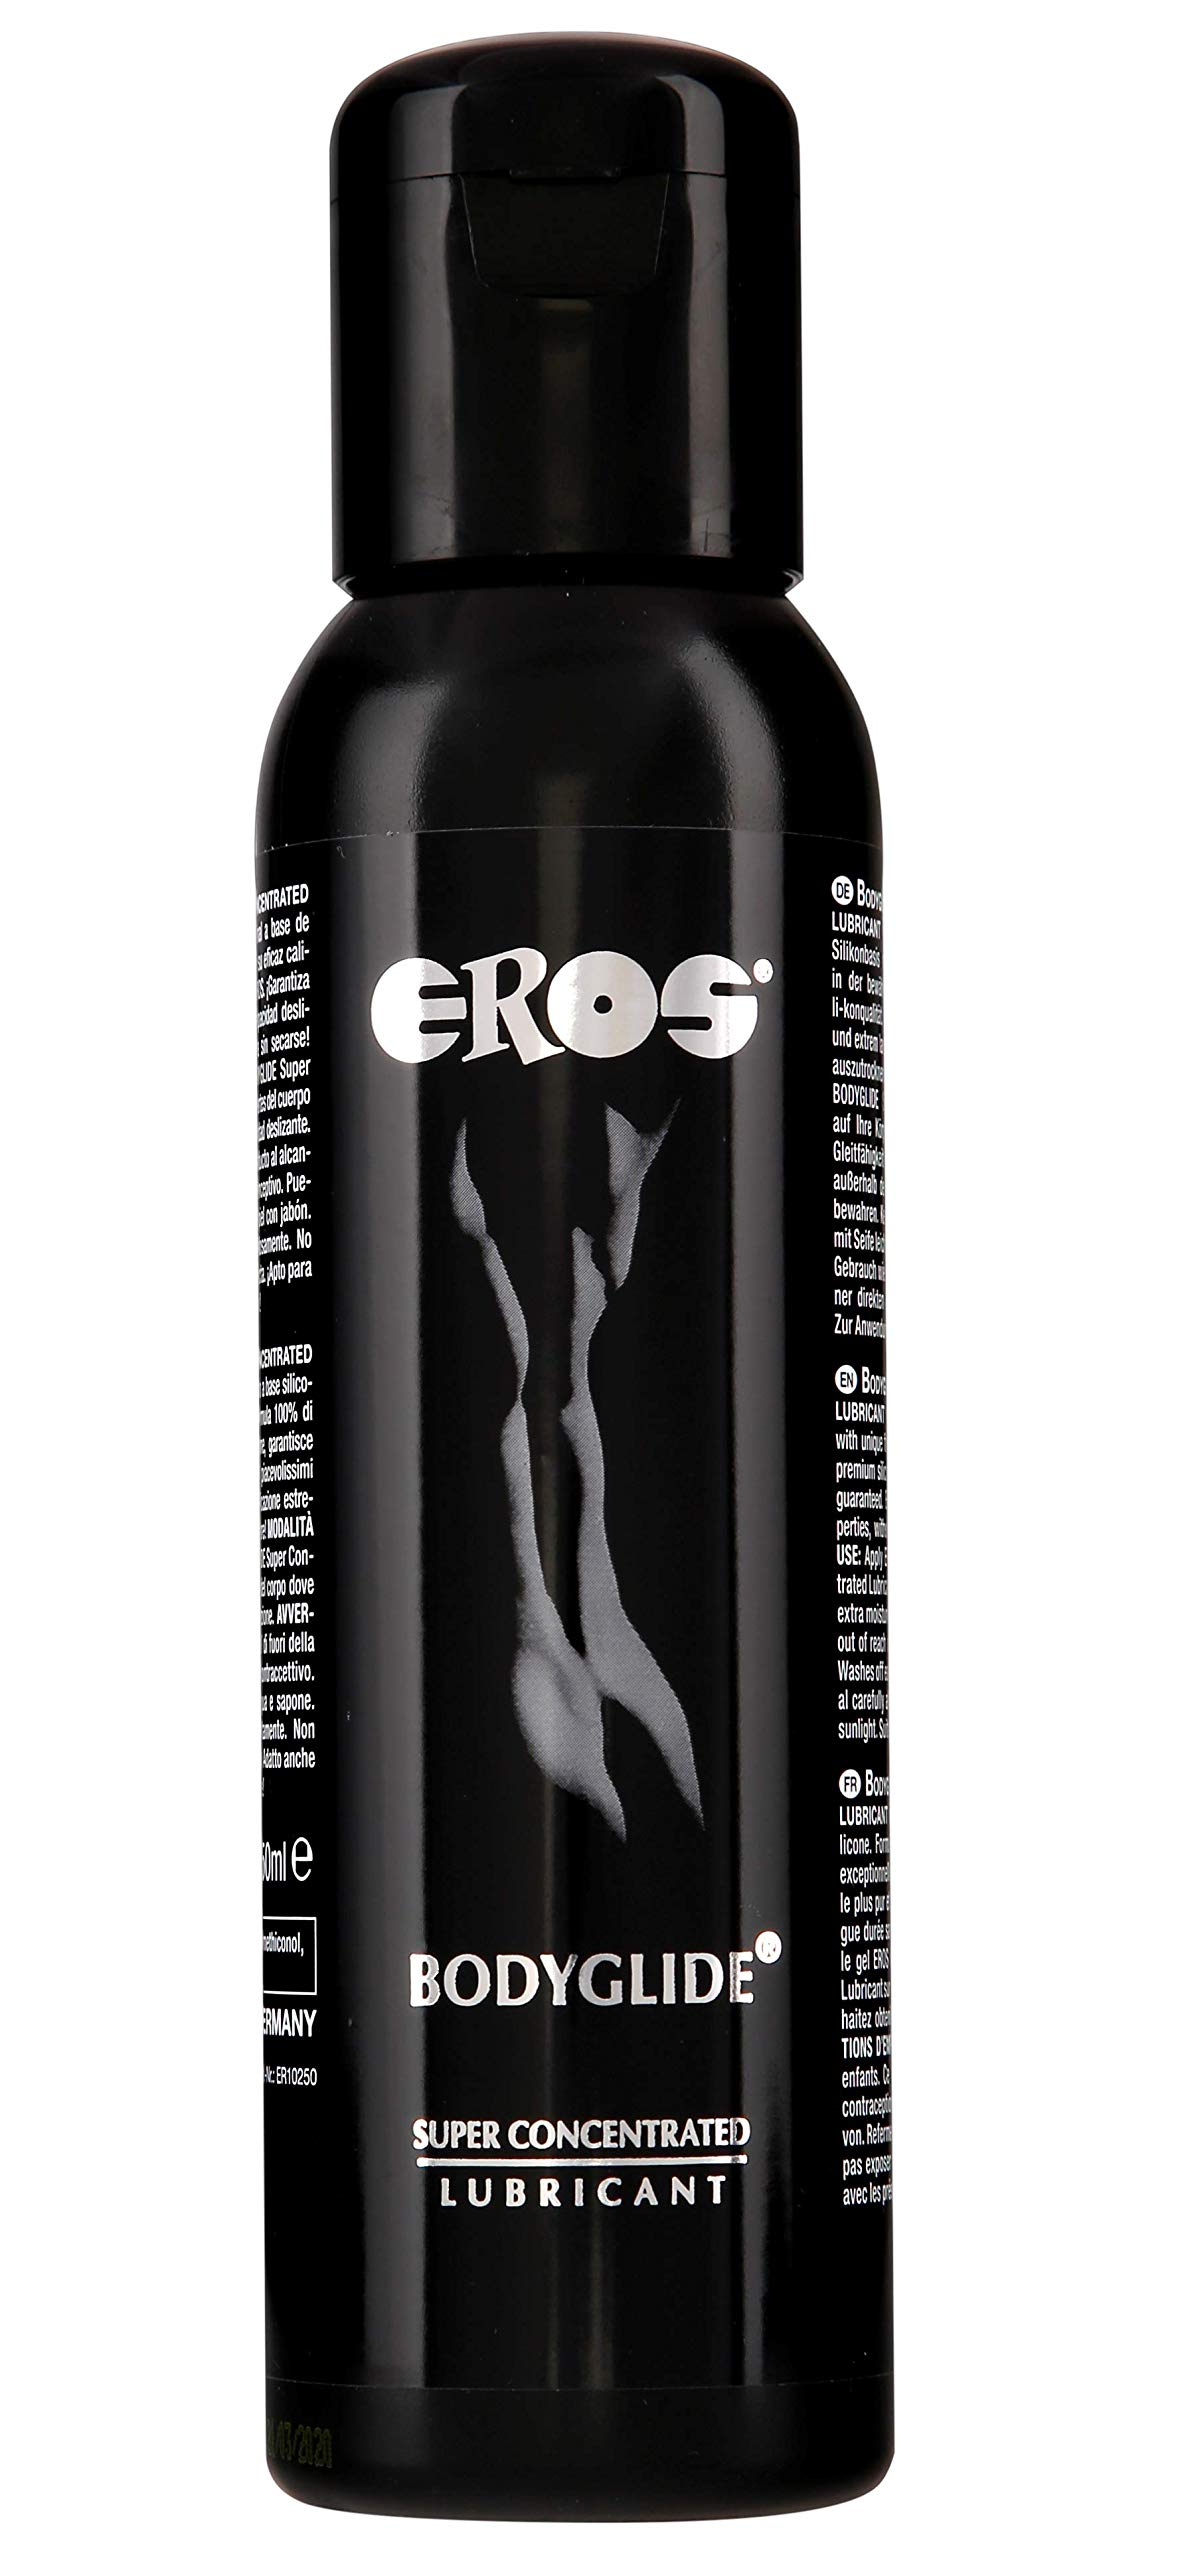 Megasol EROS Bodyglide Super Concentrated Body Gel - Silicon Based Personal Lubricant. Latex Condom Safe, Ultra Long-Lasting Sex Lube Without Parabens or Glycerin ~ 250 mL by EROS